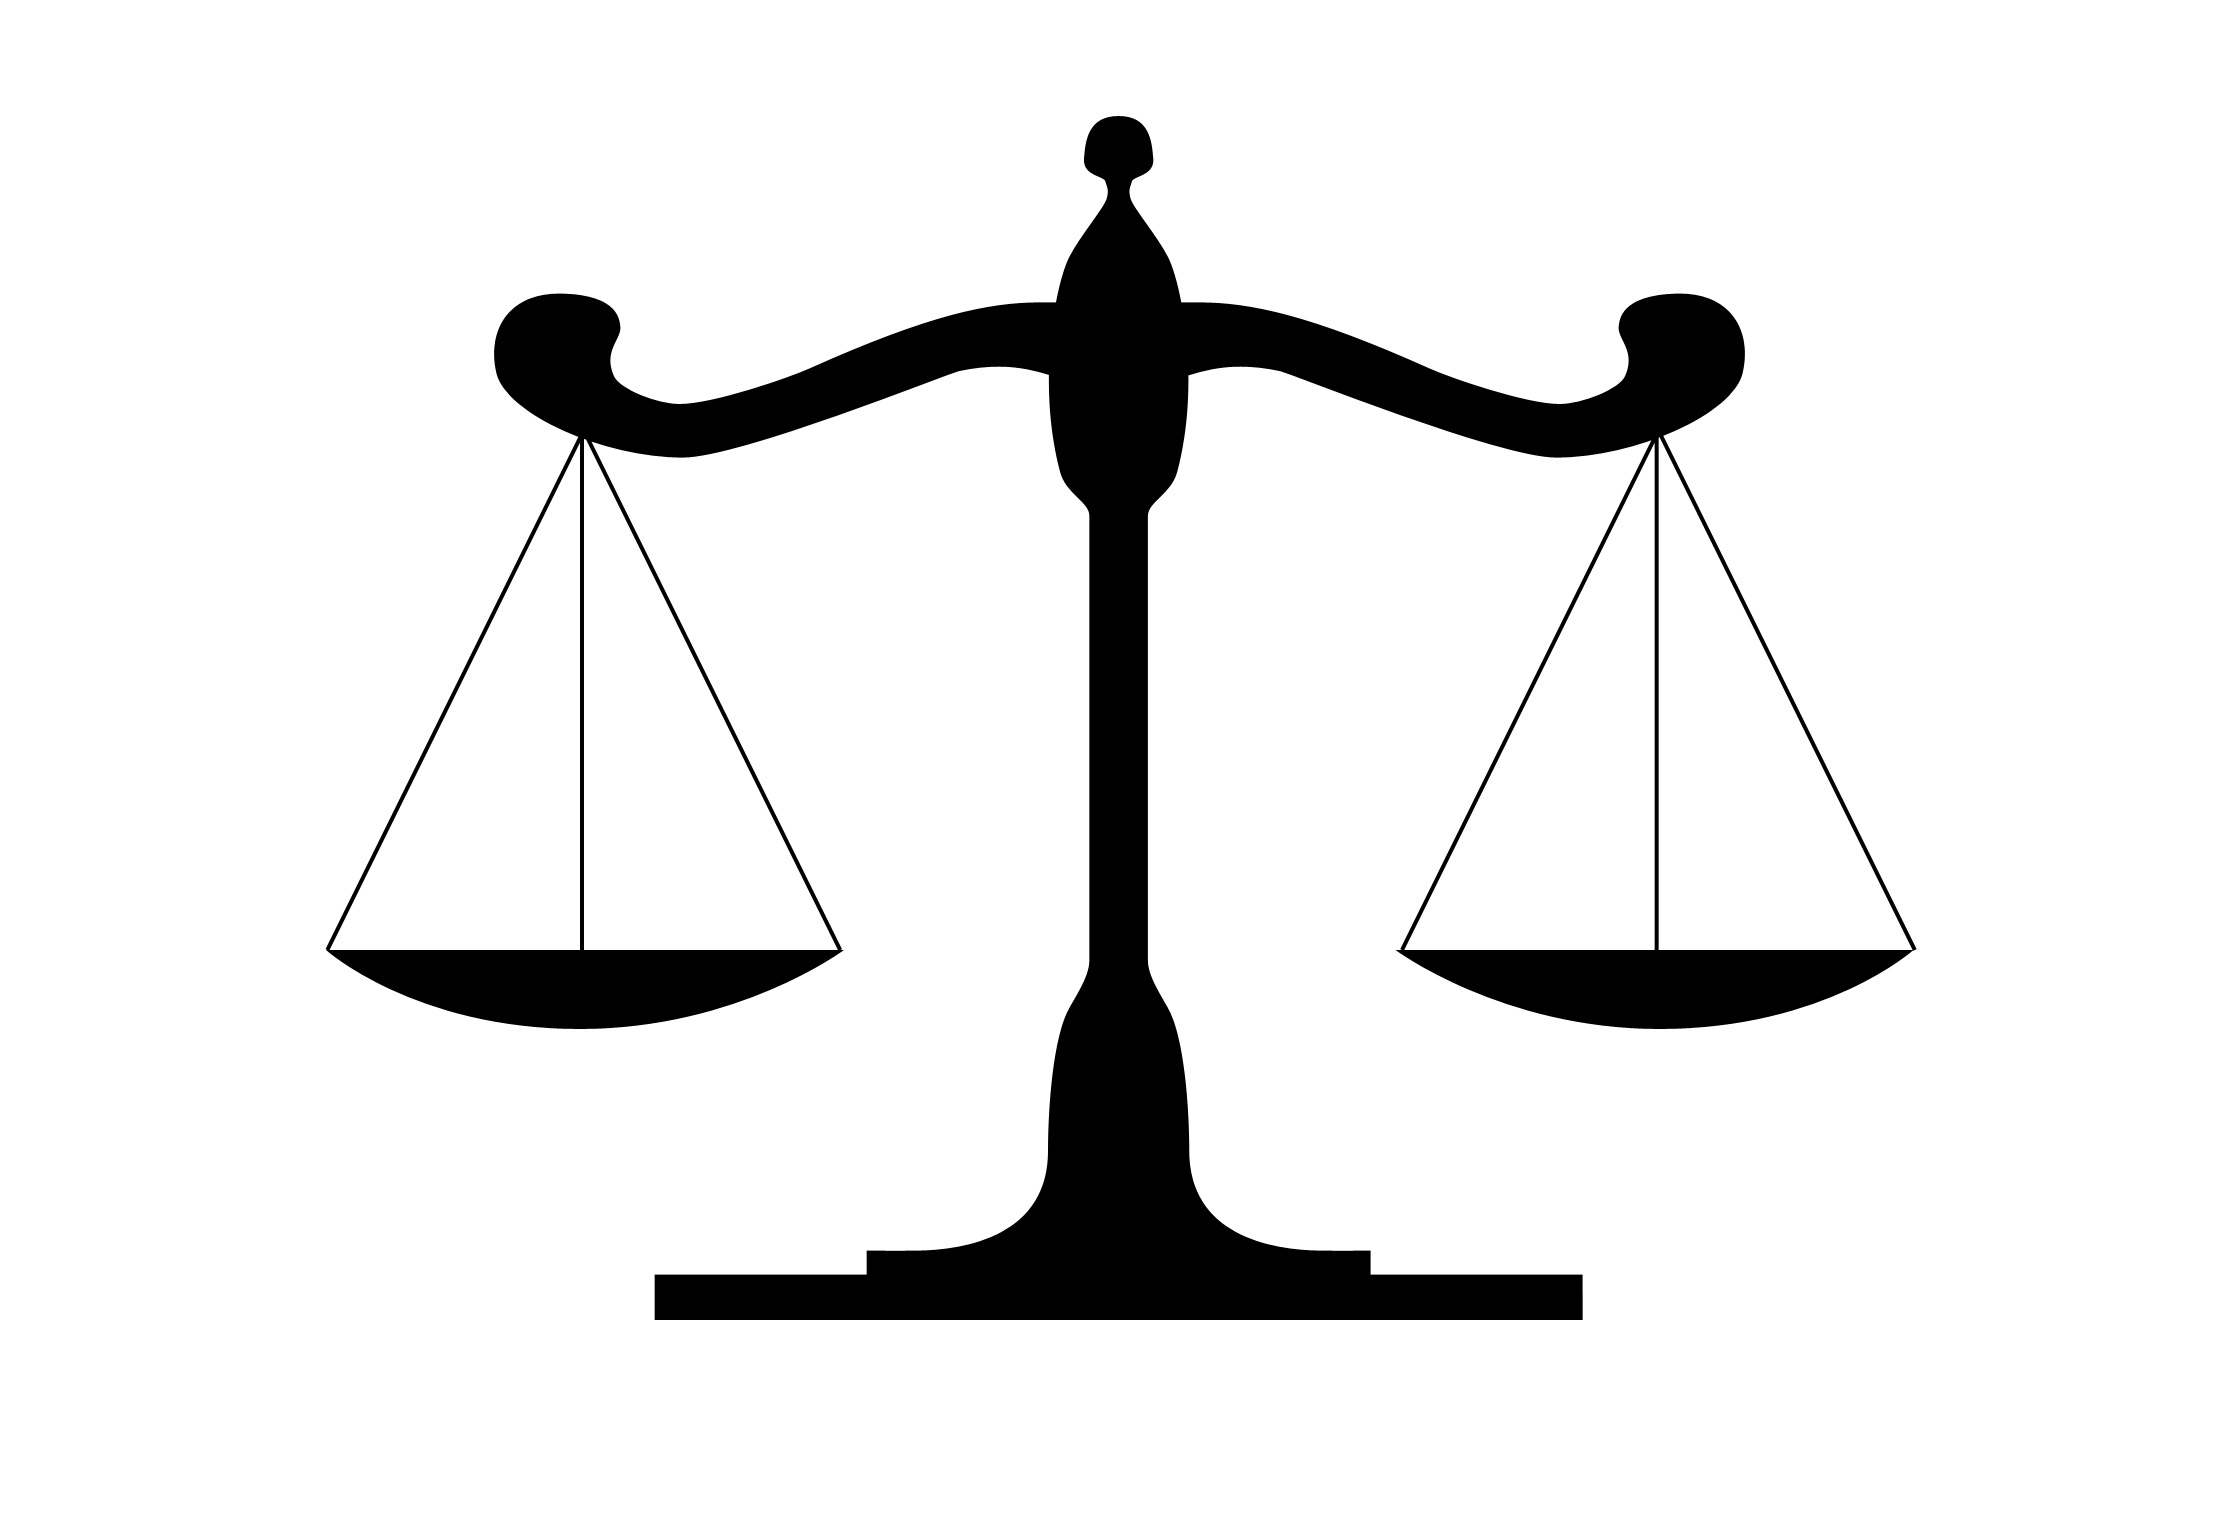 legal scales clipart - photo #28